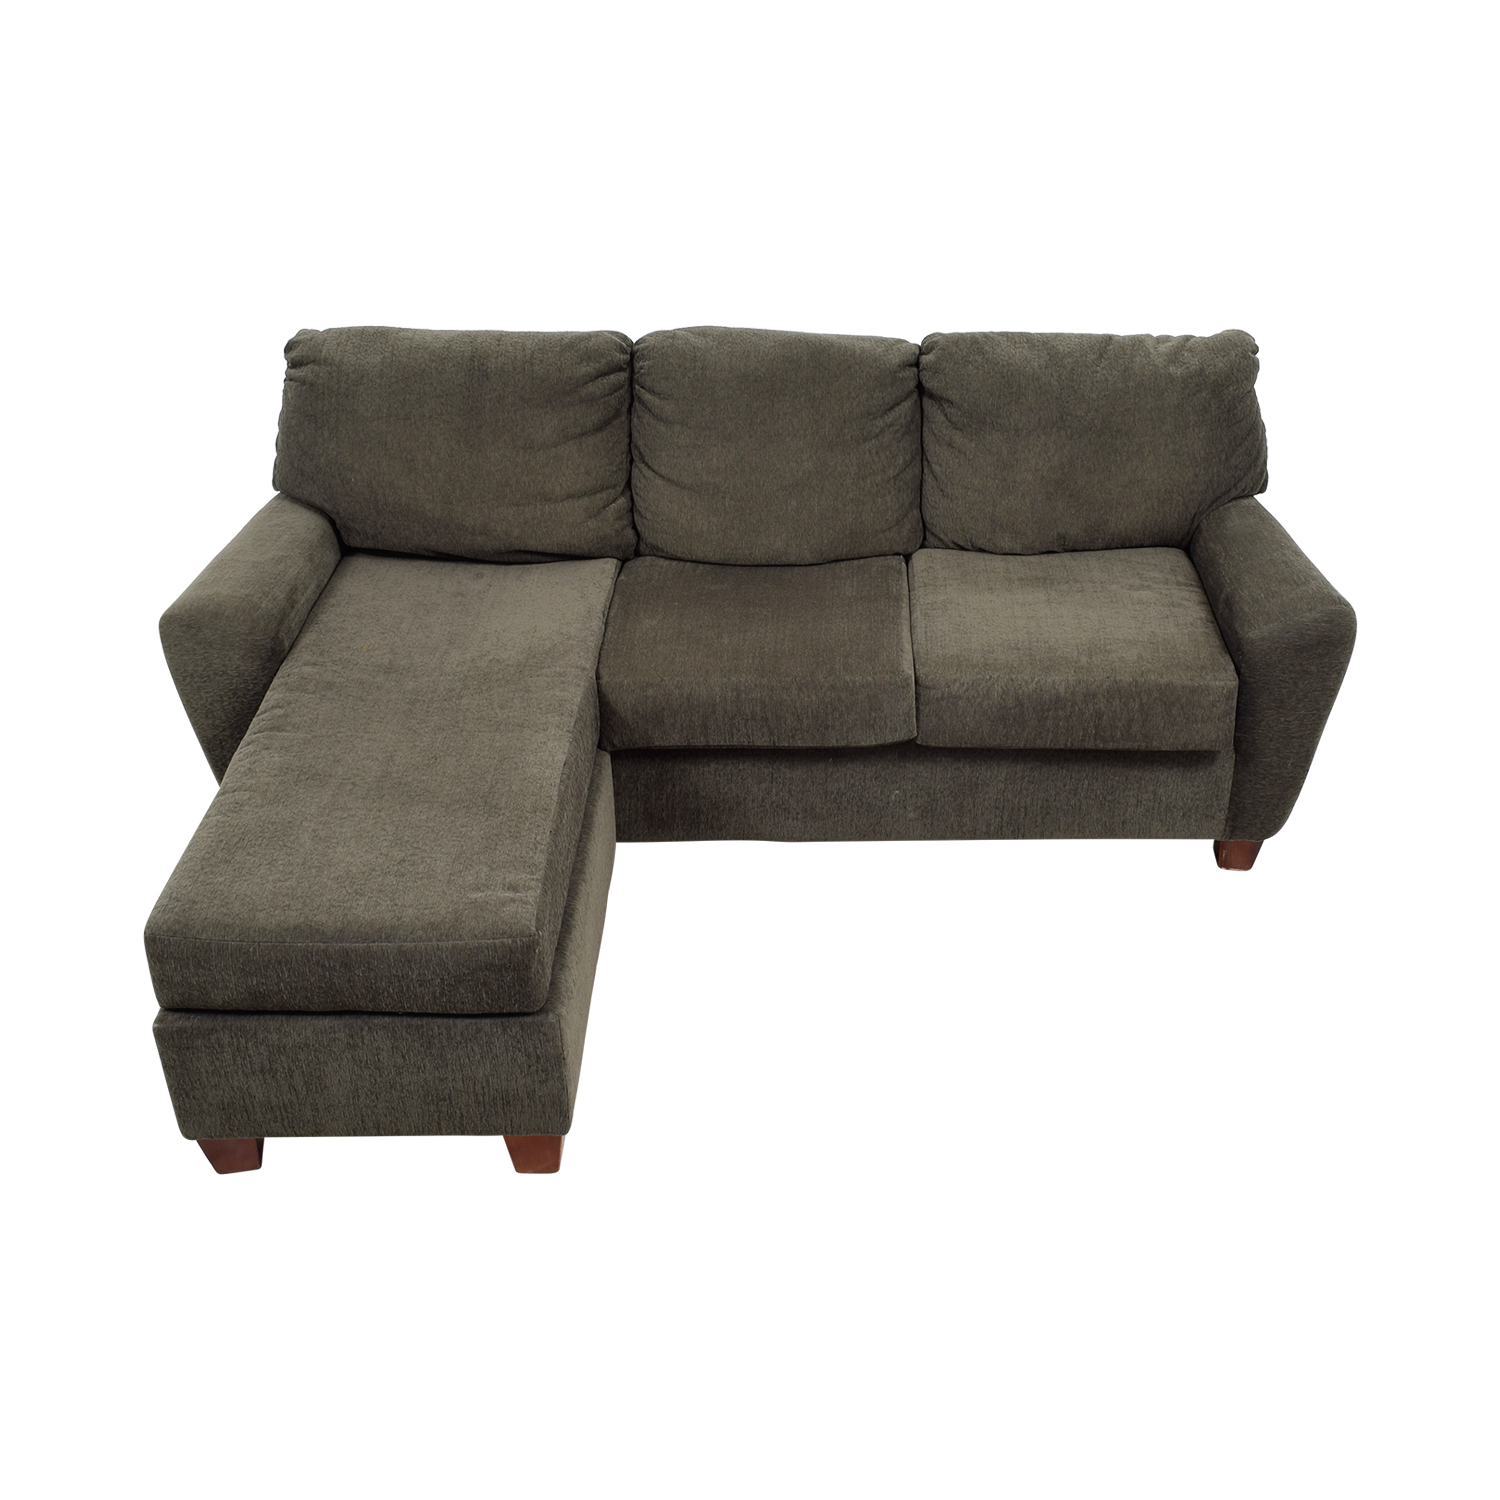 West Elm West Elm L-Shape Grey Sofa for sale